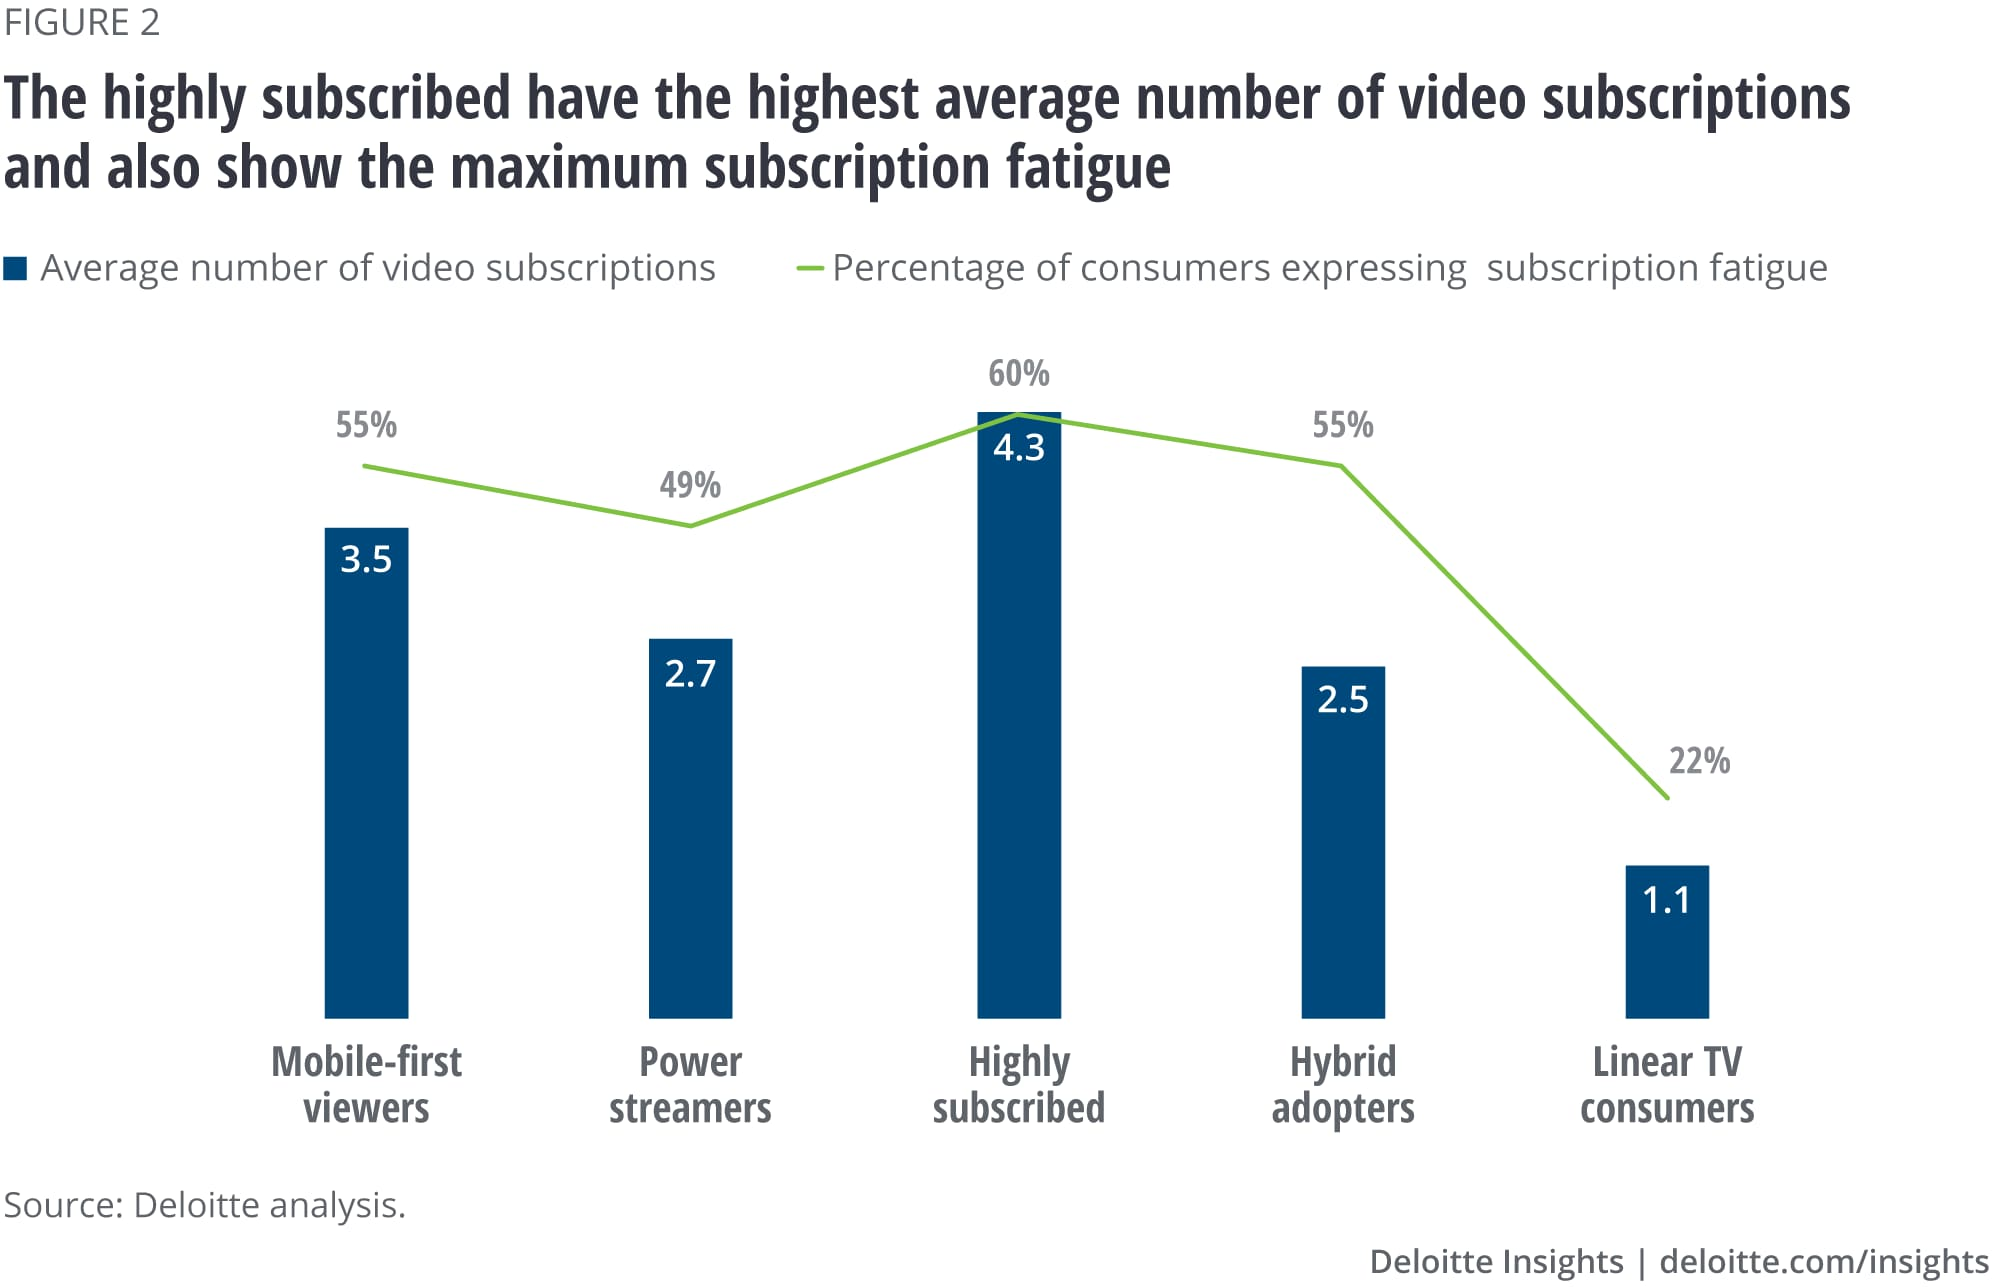 Highly subscribed have the largest average number of video subscriptions and show the highest subscription fatigue